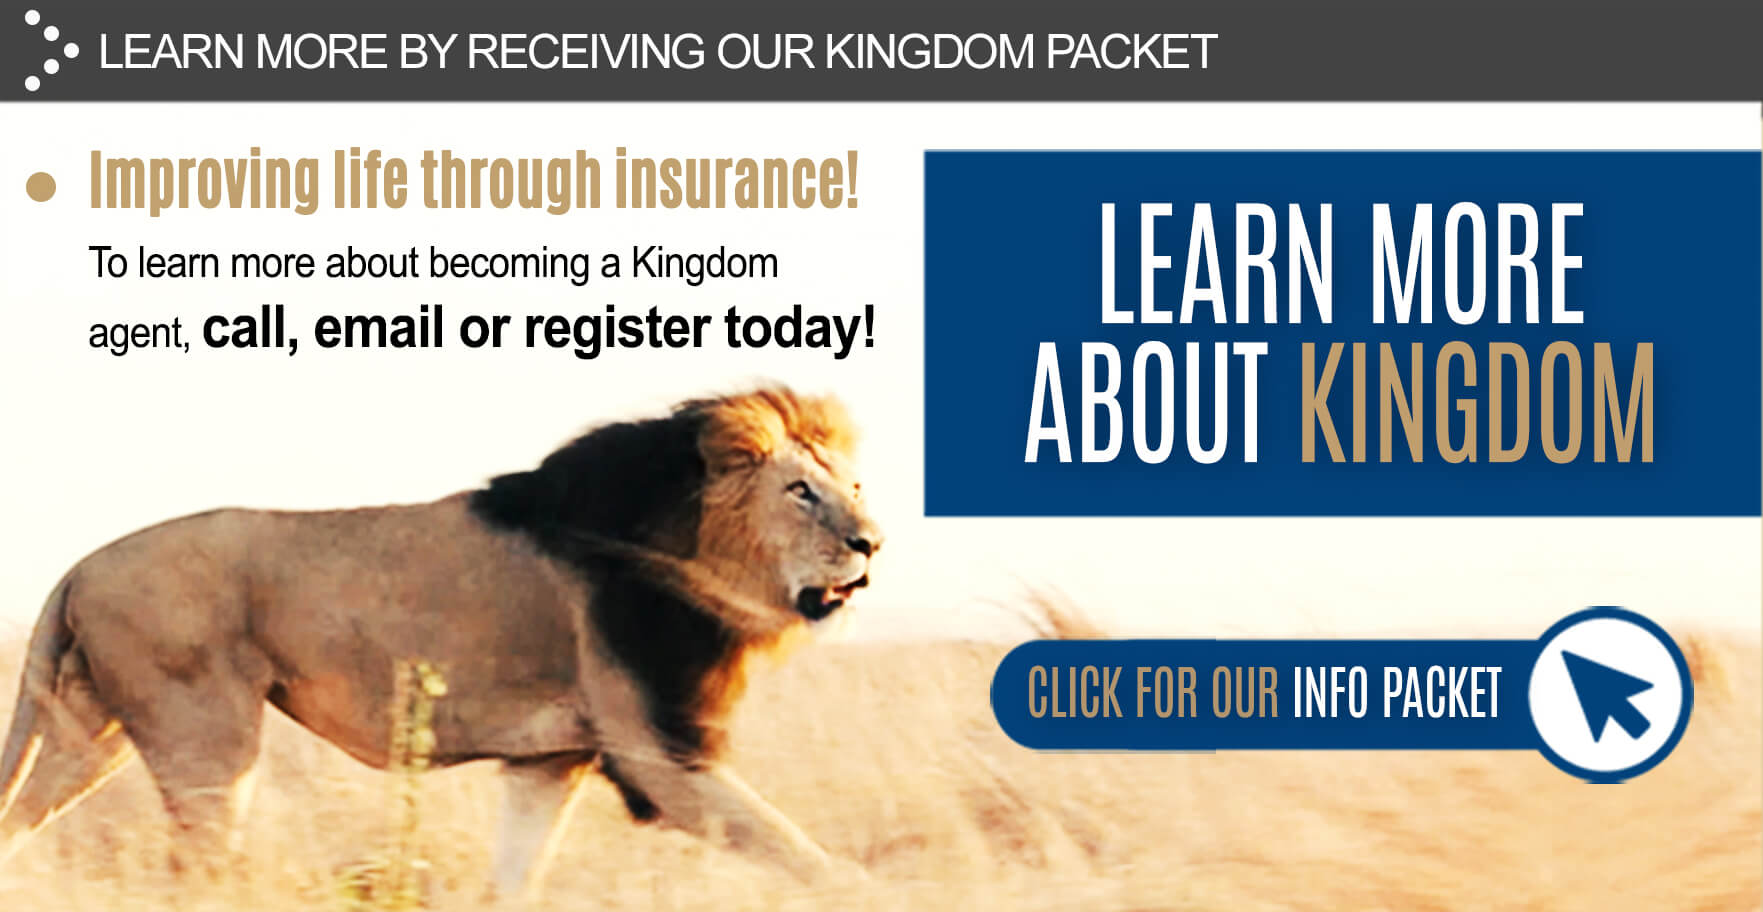 Sign up to receive the Kingdom information packet!